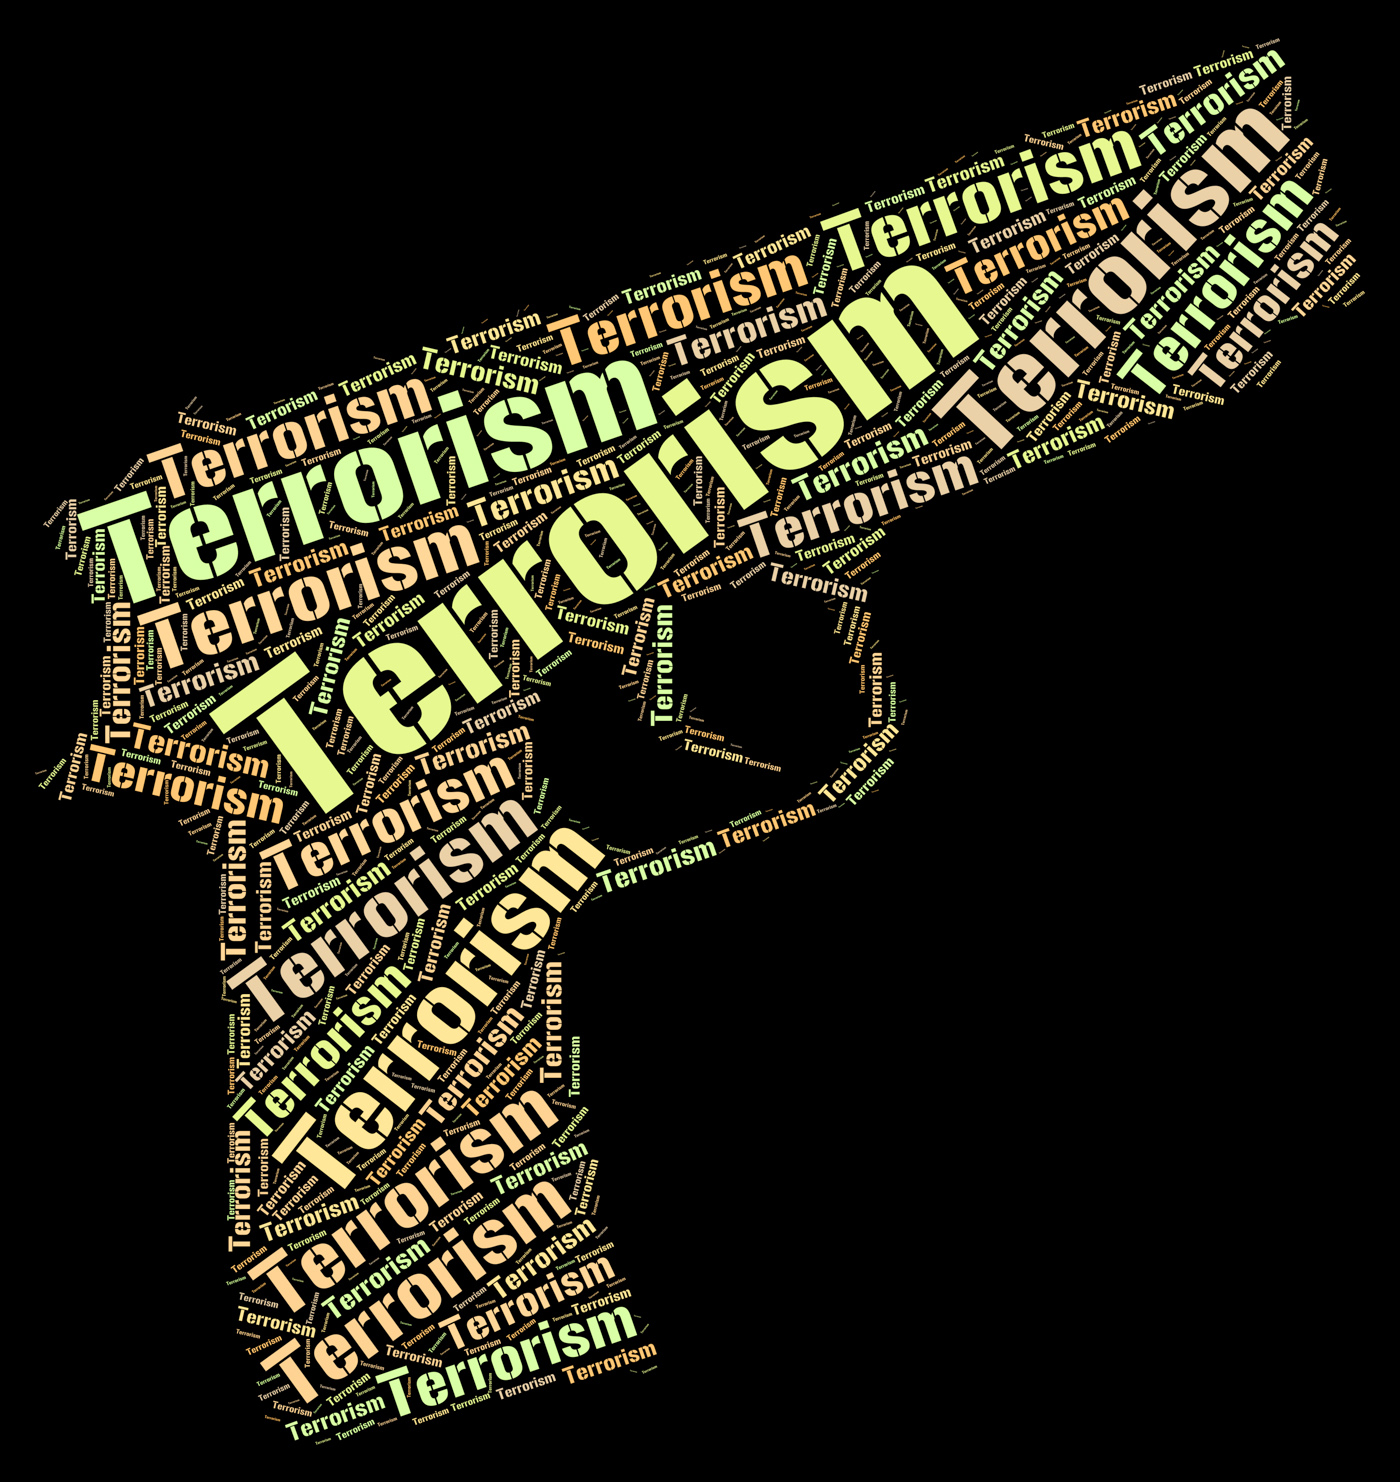 Terrorism word represents freedom fighter and anarchy photo